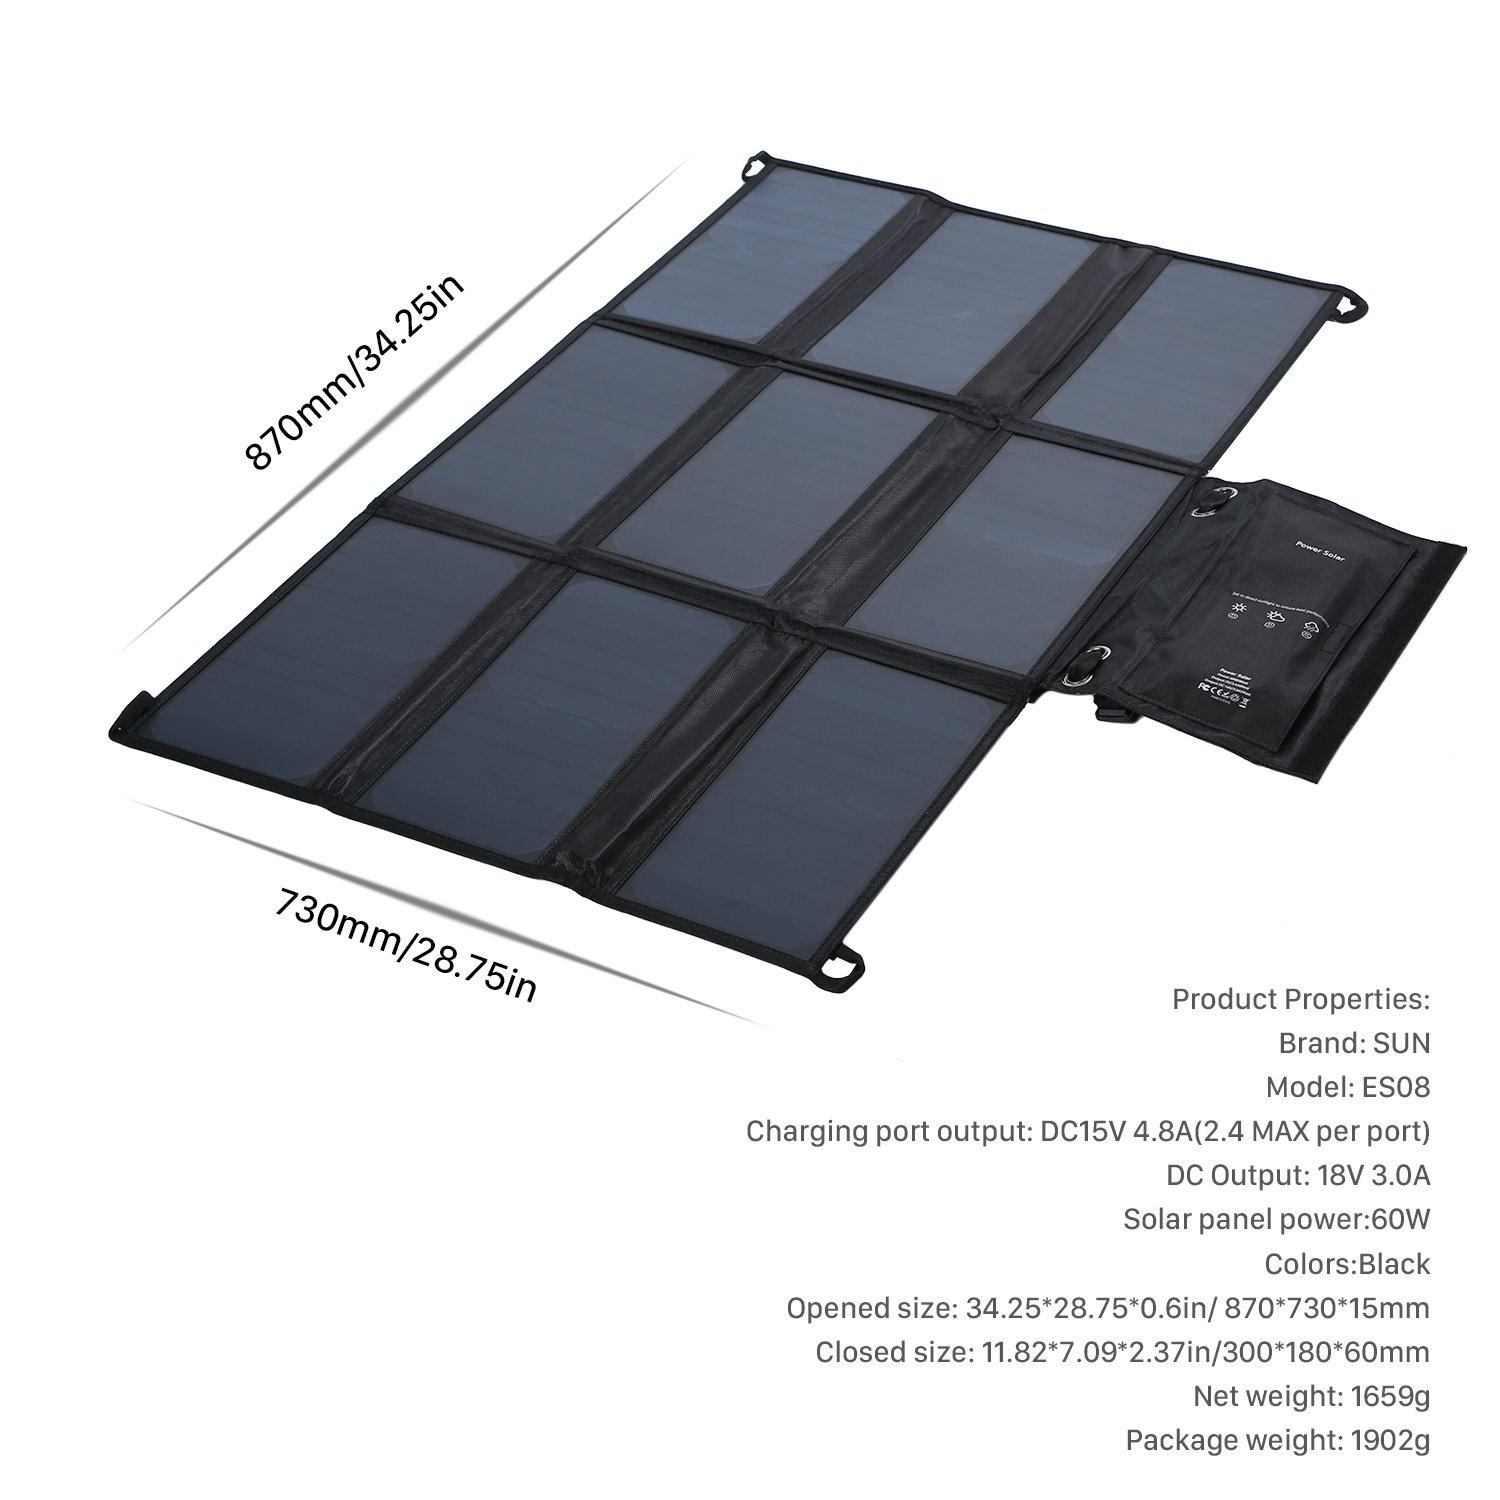 LESHP Highest Efficient Solar Charger 60W Foldable Sunpower Solar Panel Charger Dual Output (5V USB + 18V DC) For StorageBattery, iPhone, iPad, Android Smart Phone by LESHP (Image #7)